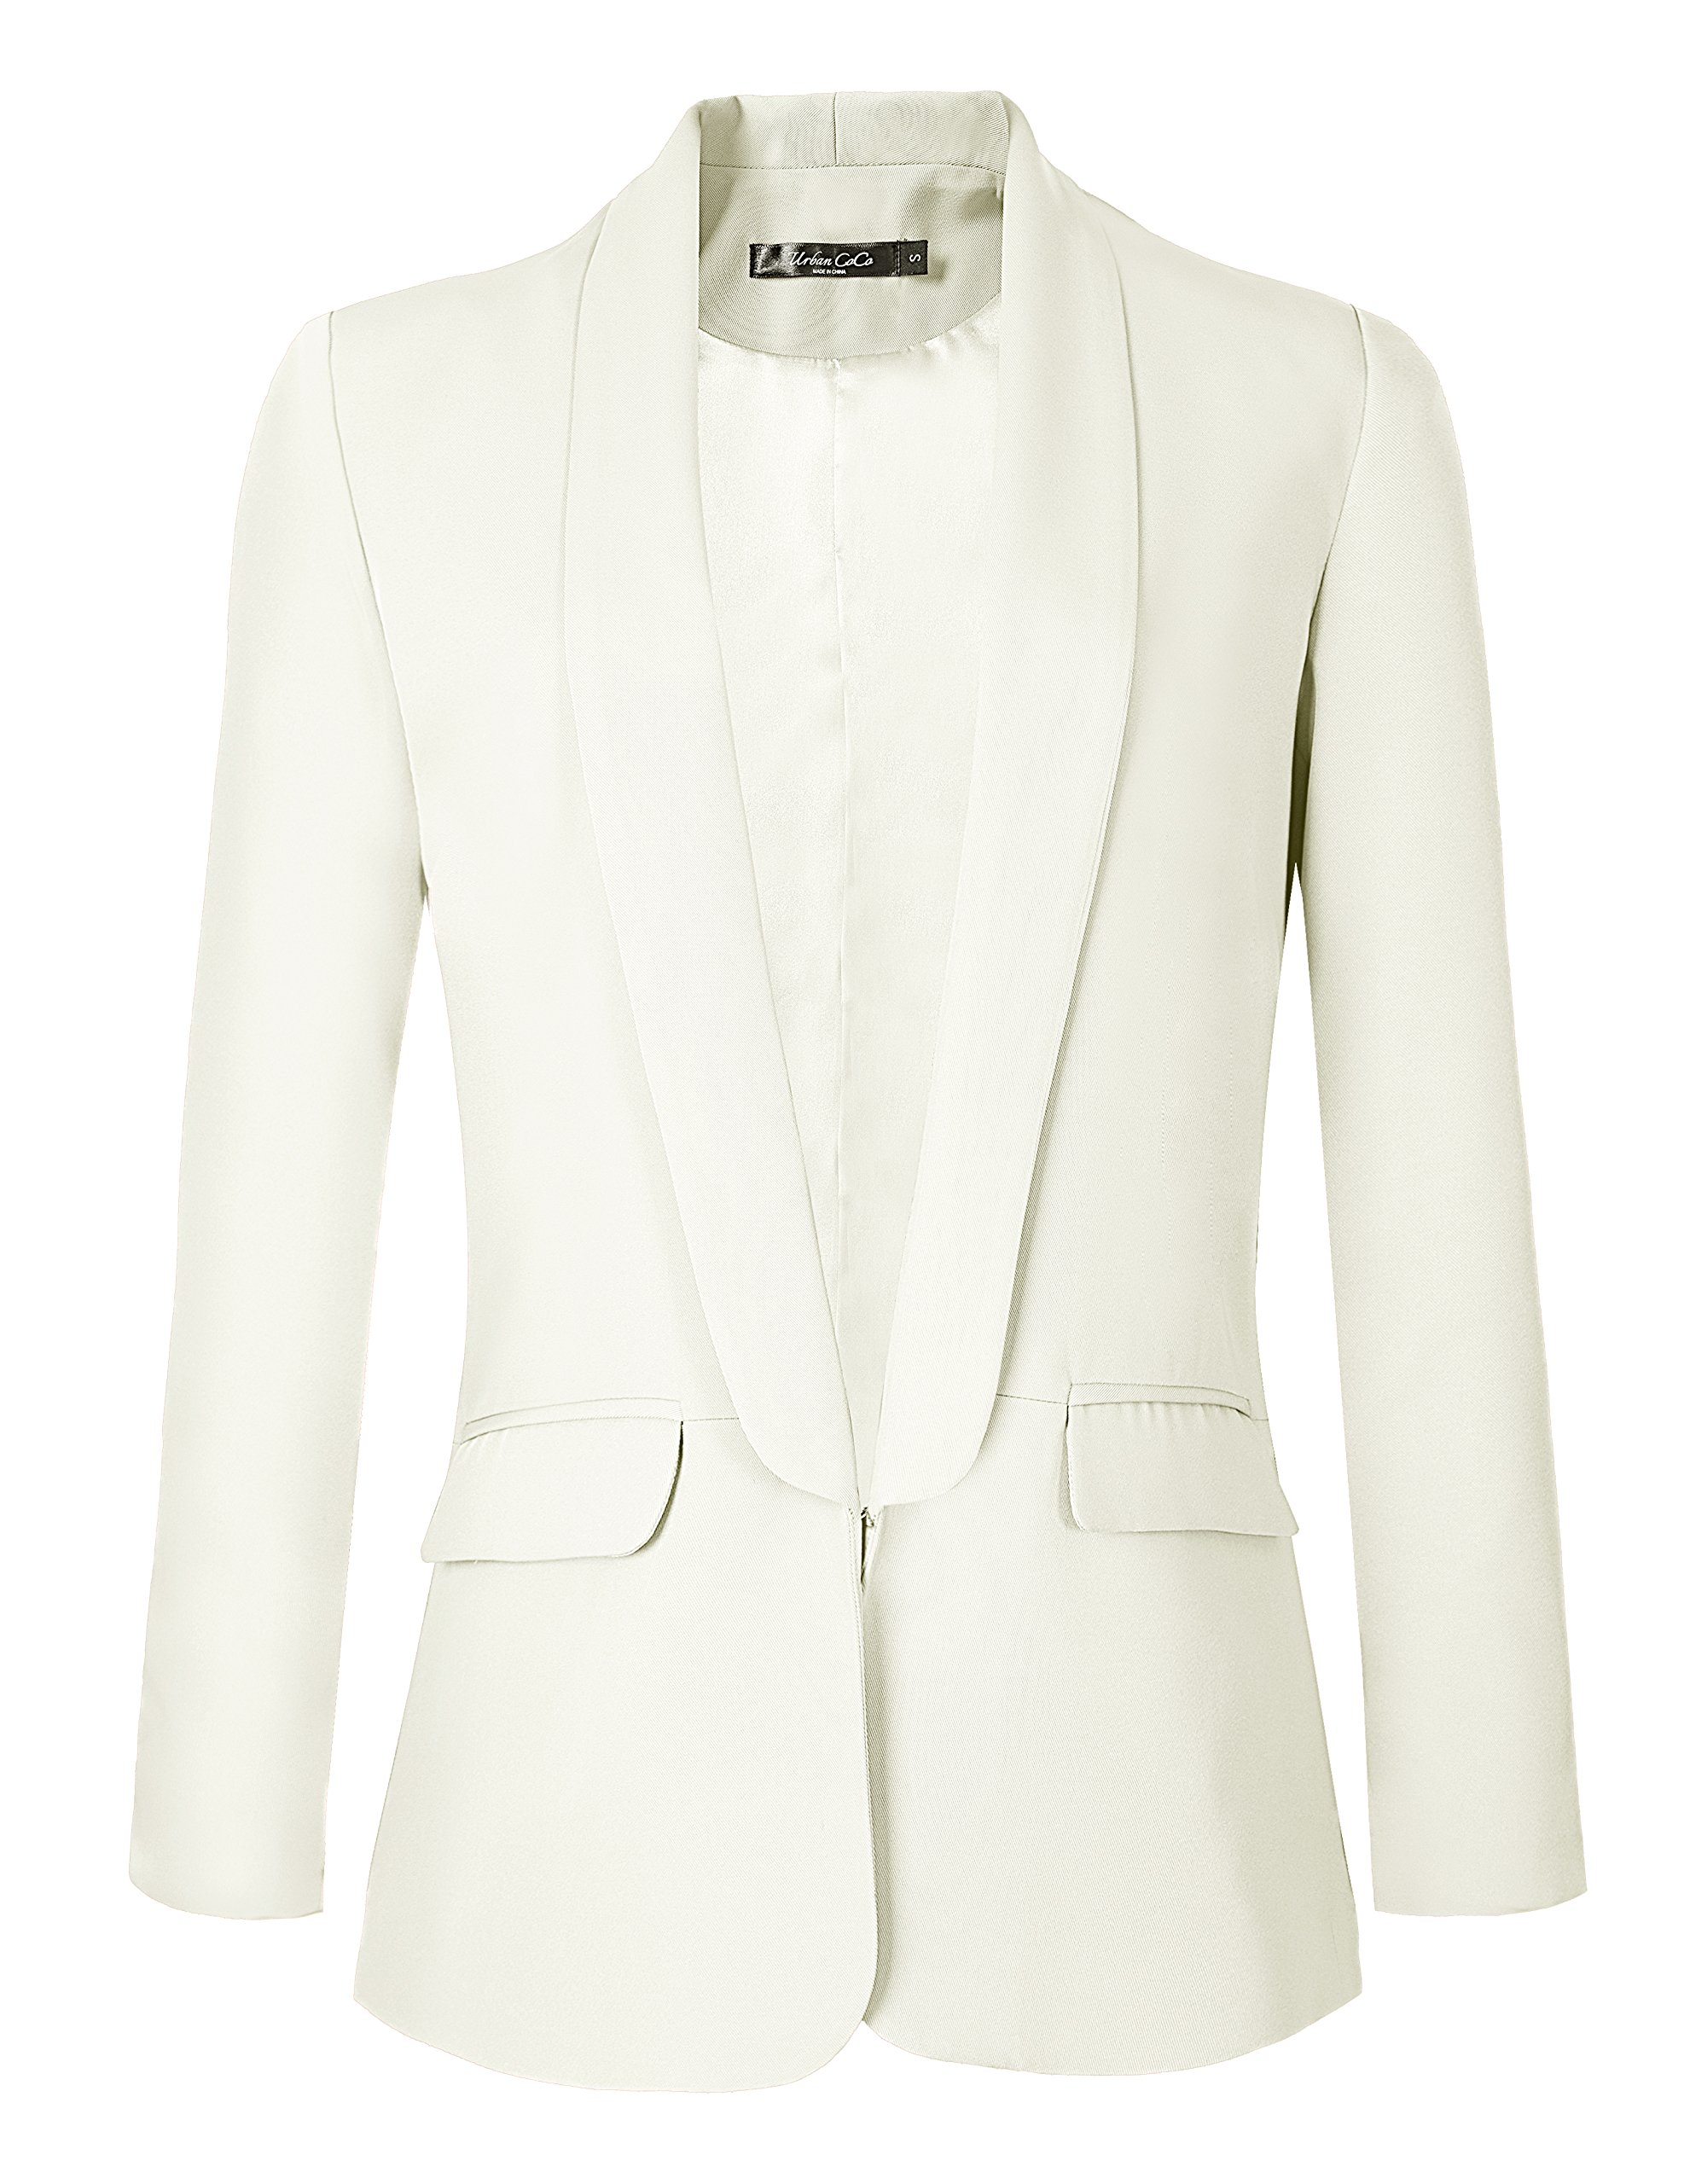 Urban CoCo Women's Office Blazer Jacket Open Front (L, White)